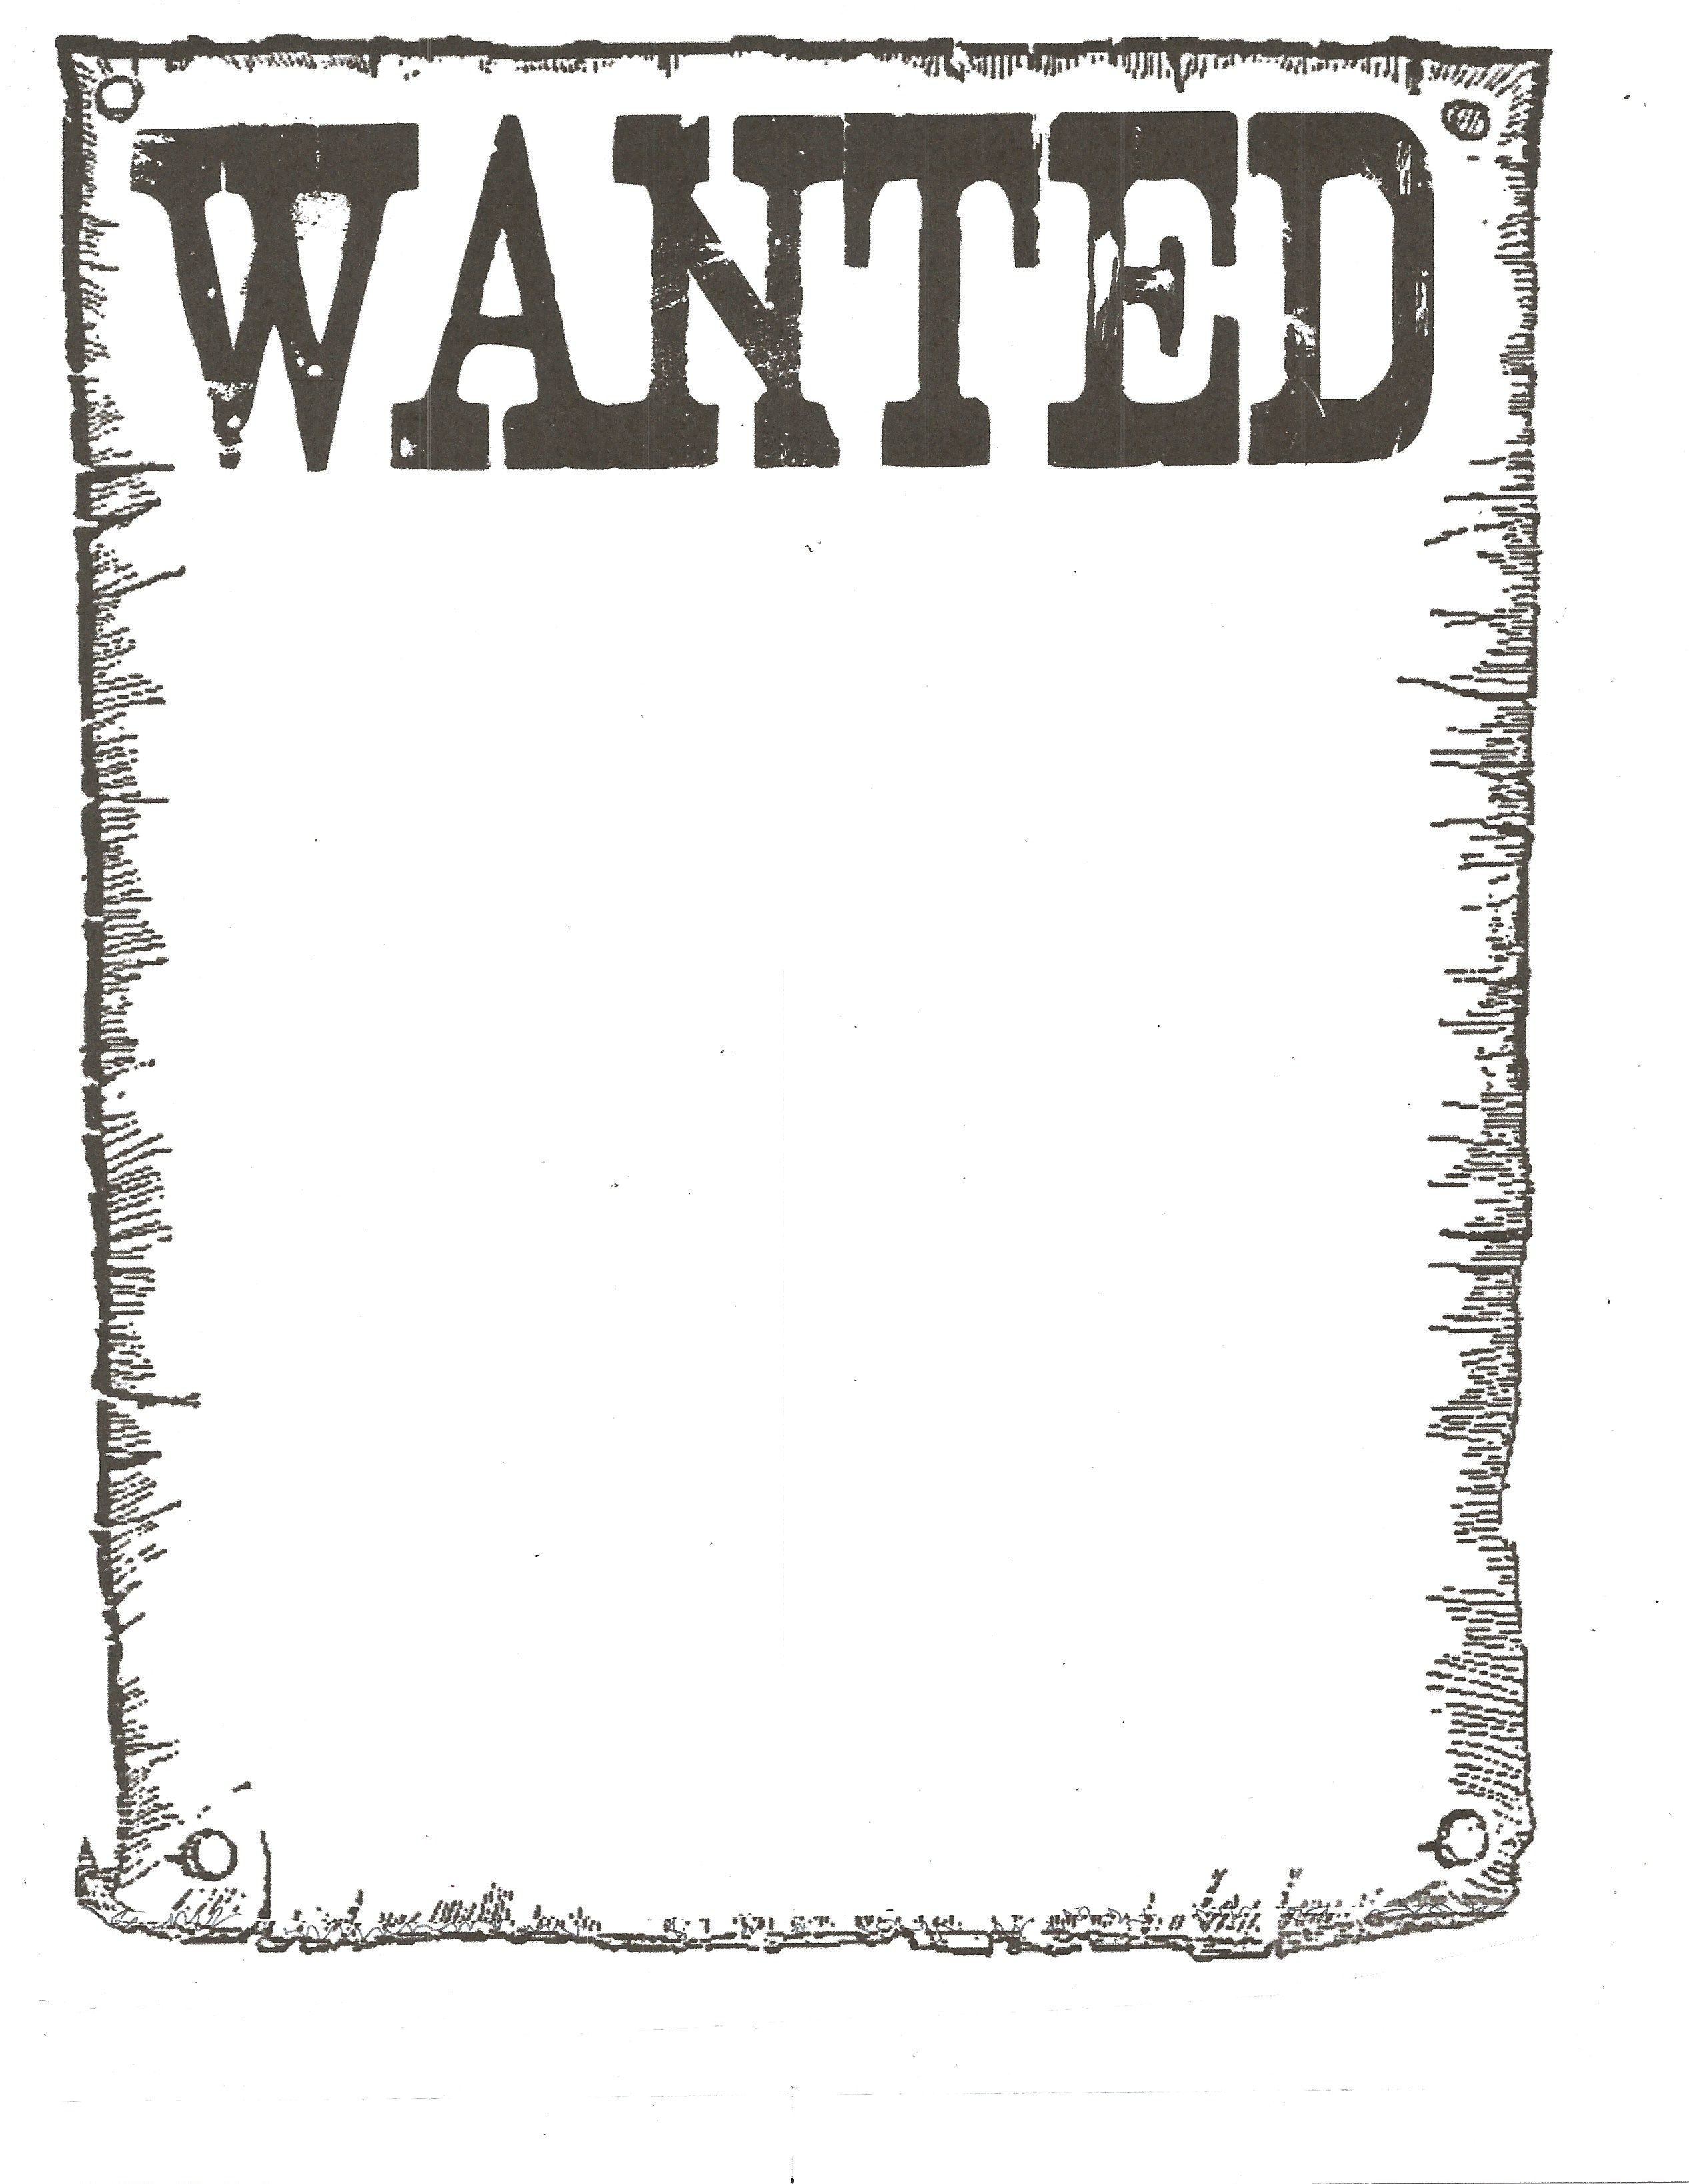 Western wanted poster clipart 7 » Clipart Station.